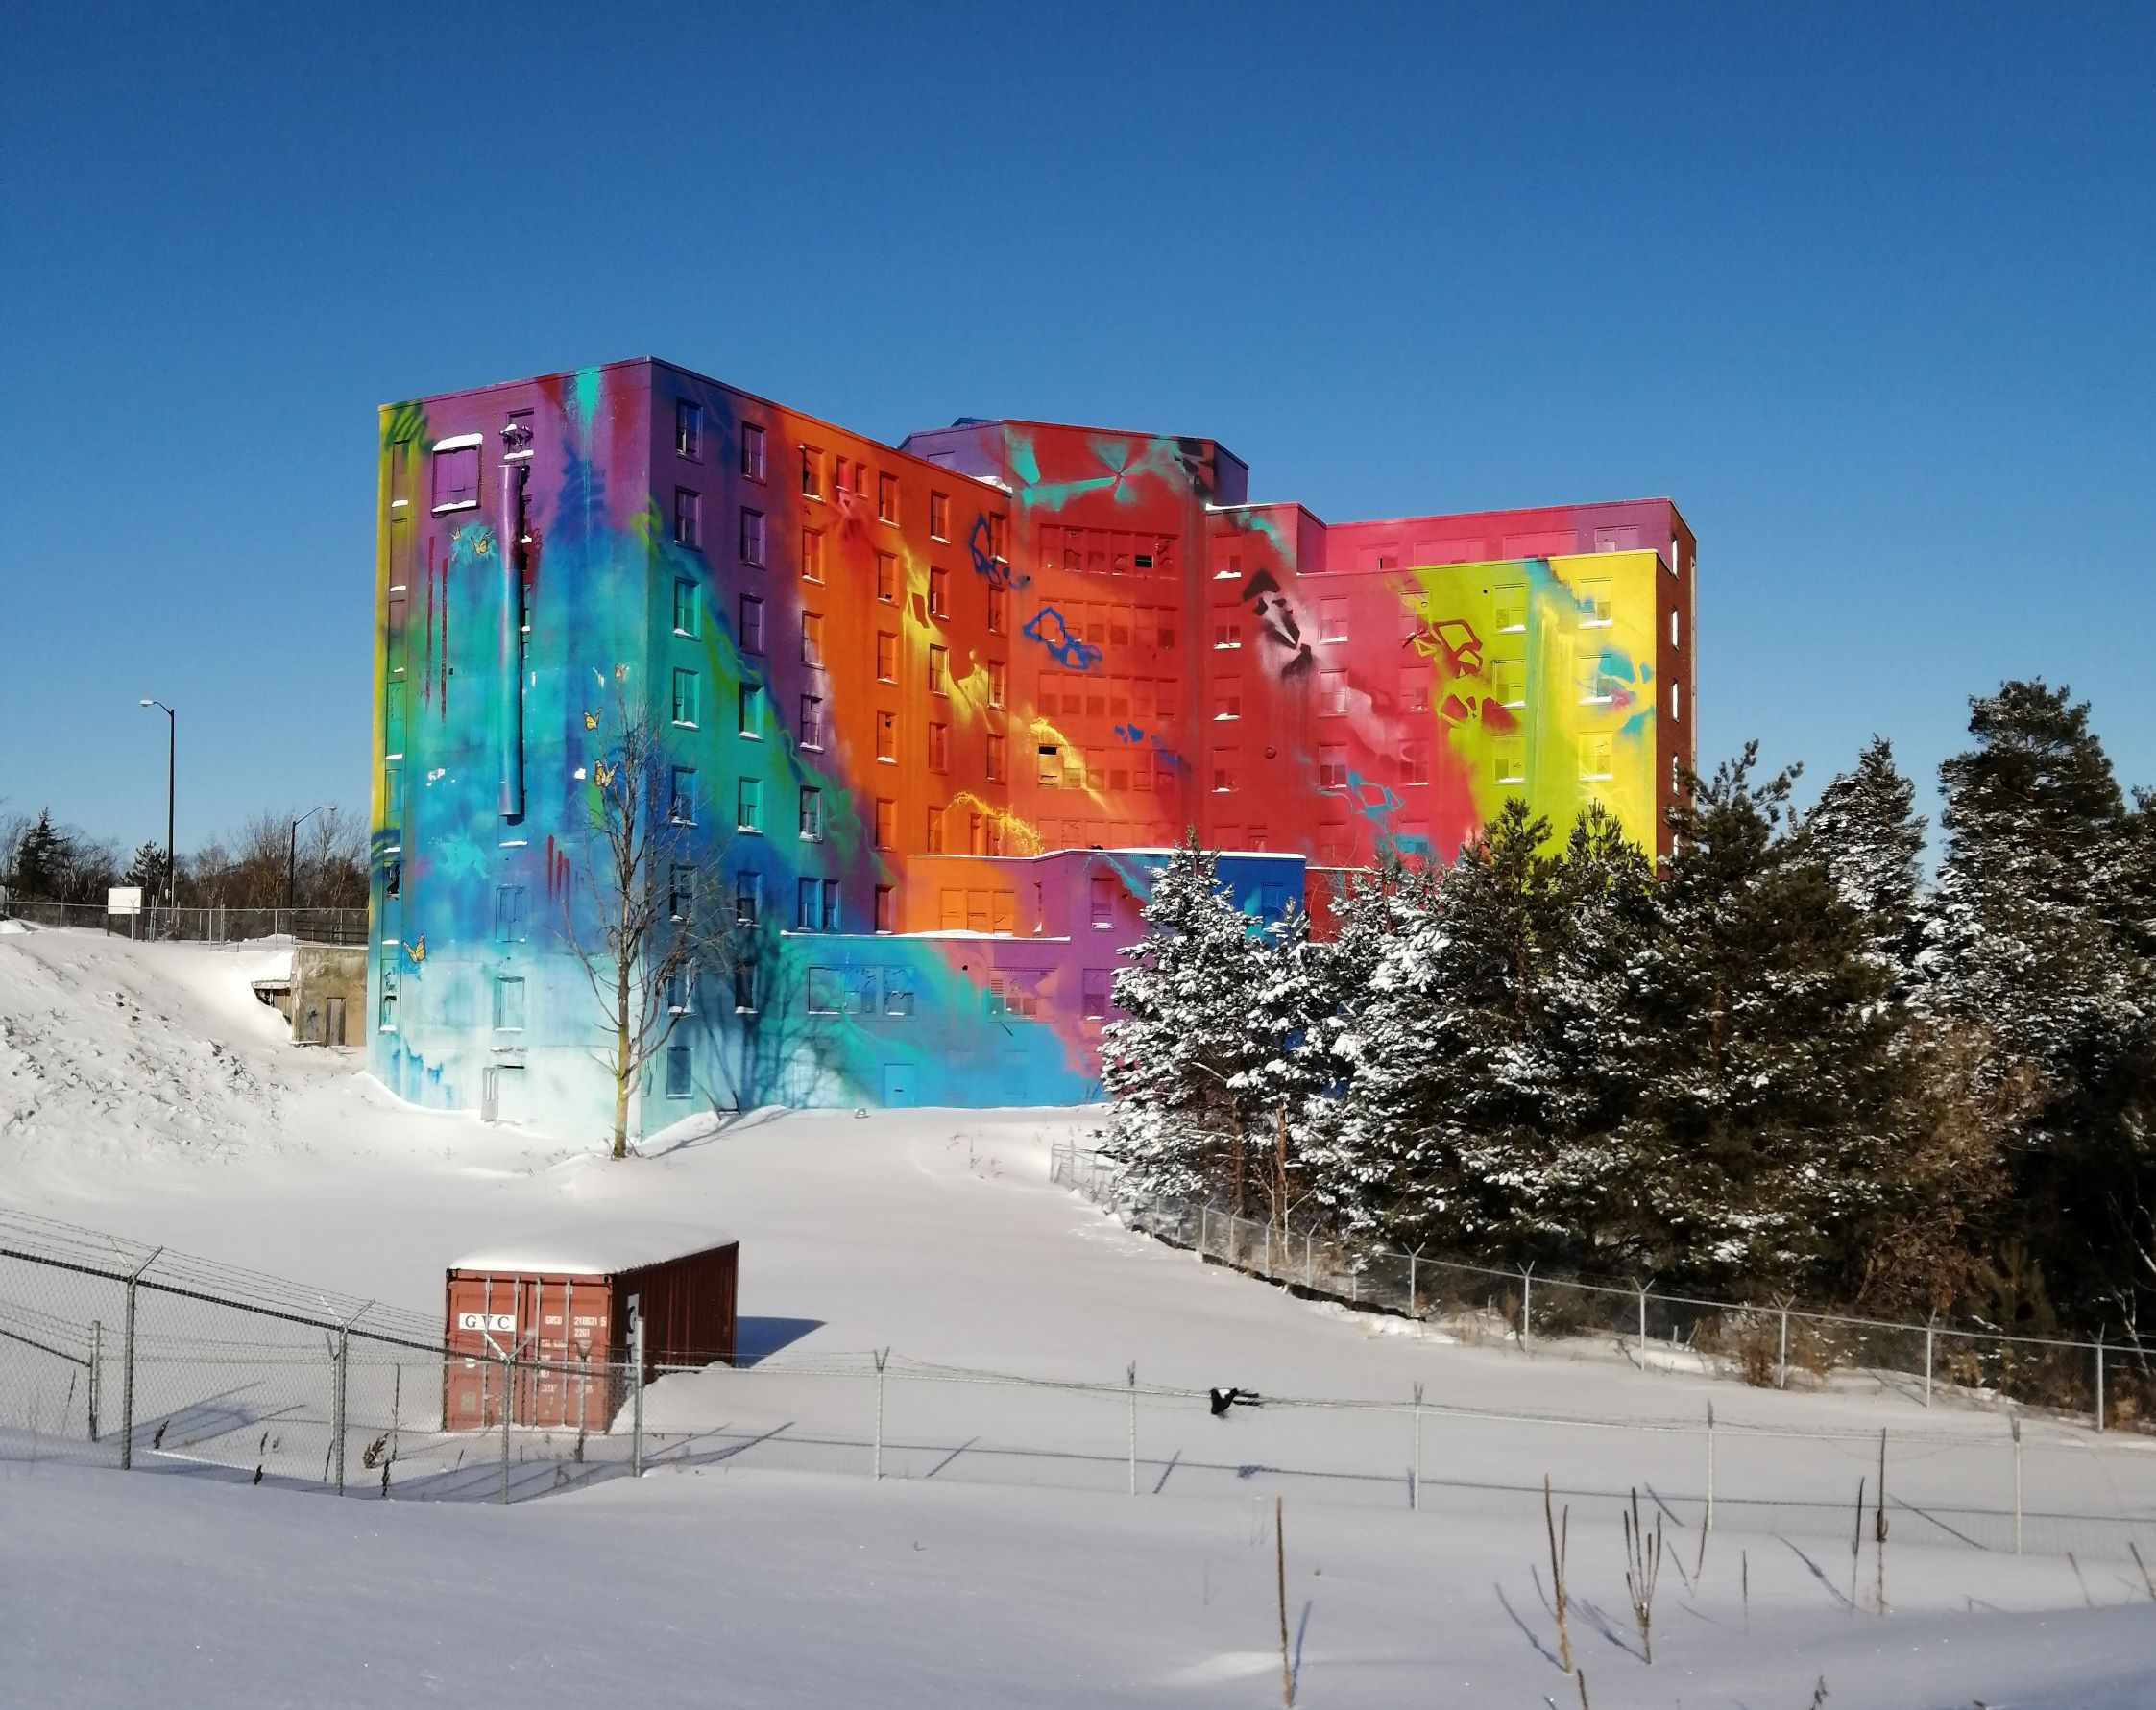 News: Update on Hospital Mural Writing Project